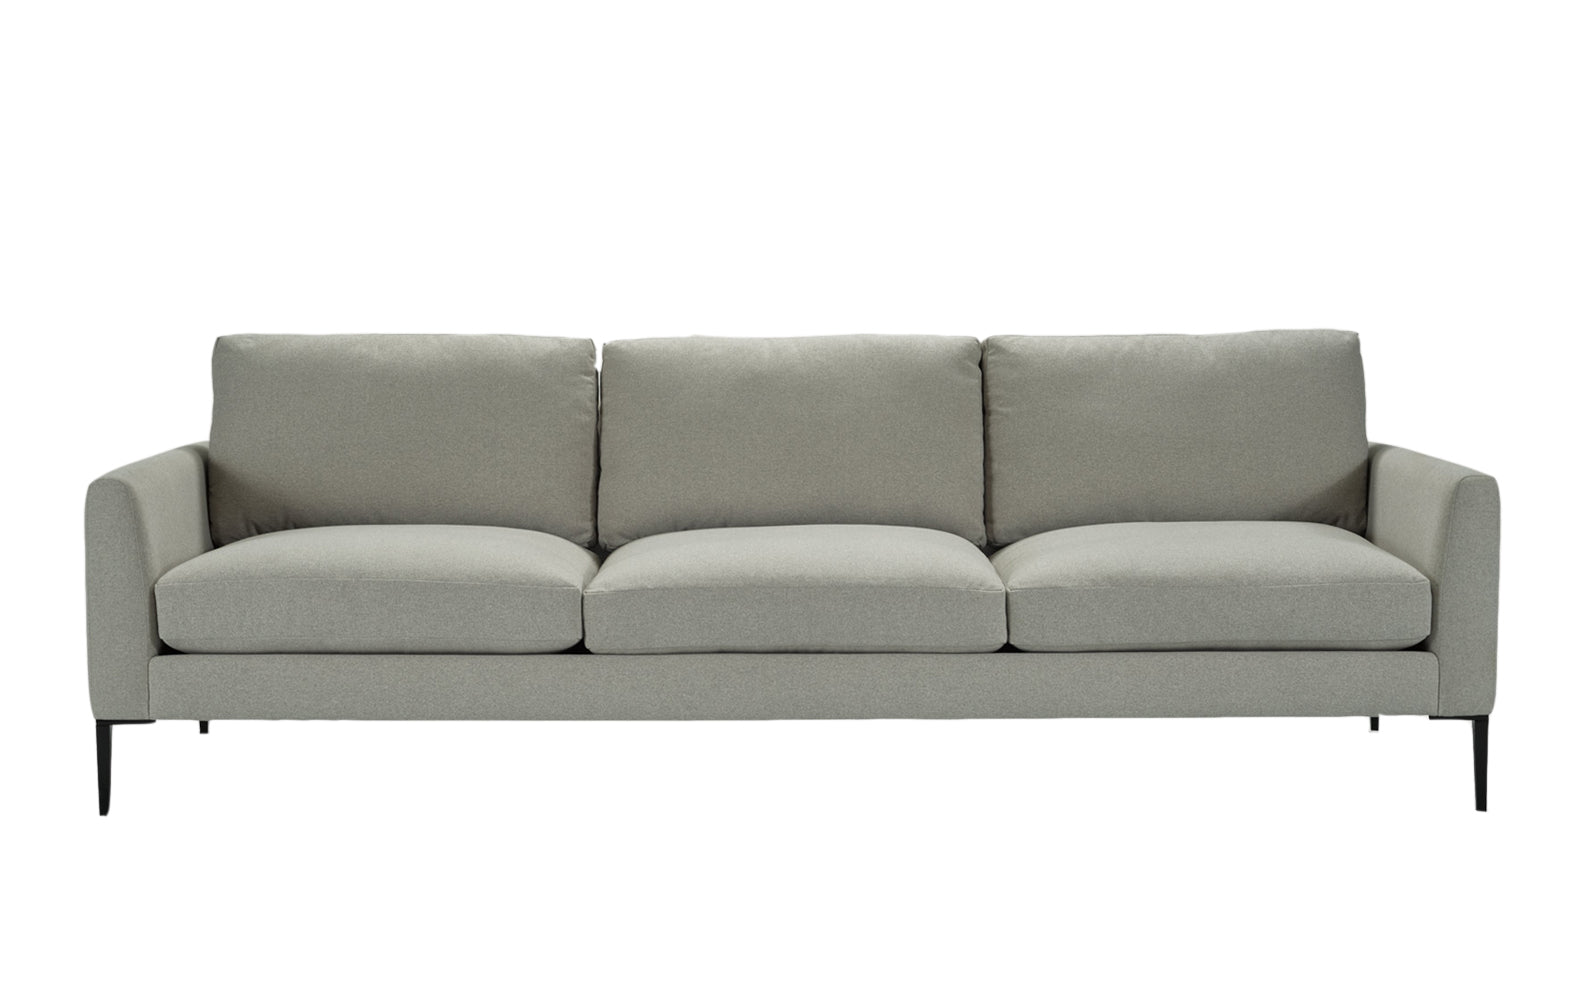 Thursday Taper Arm Sofa